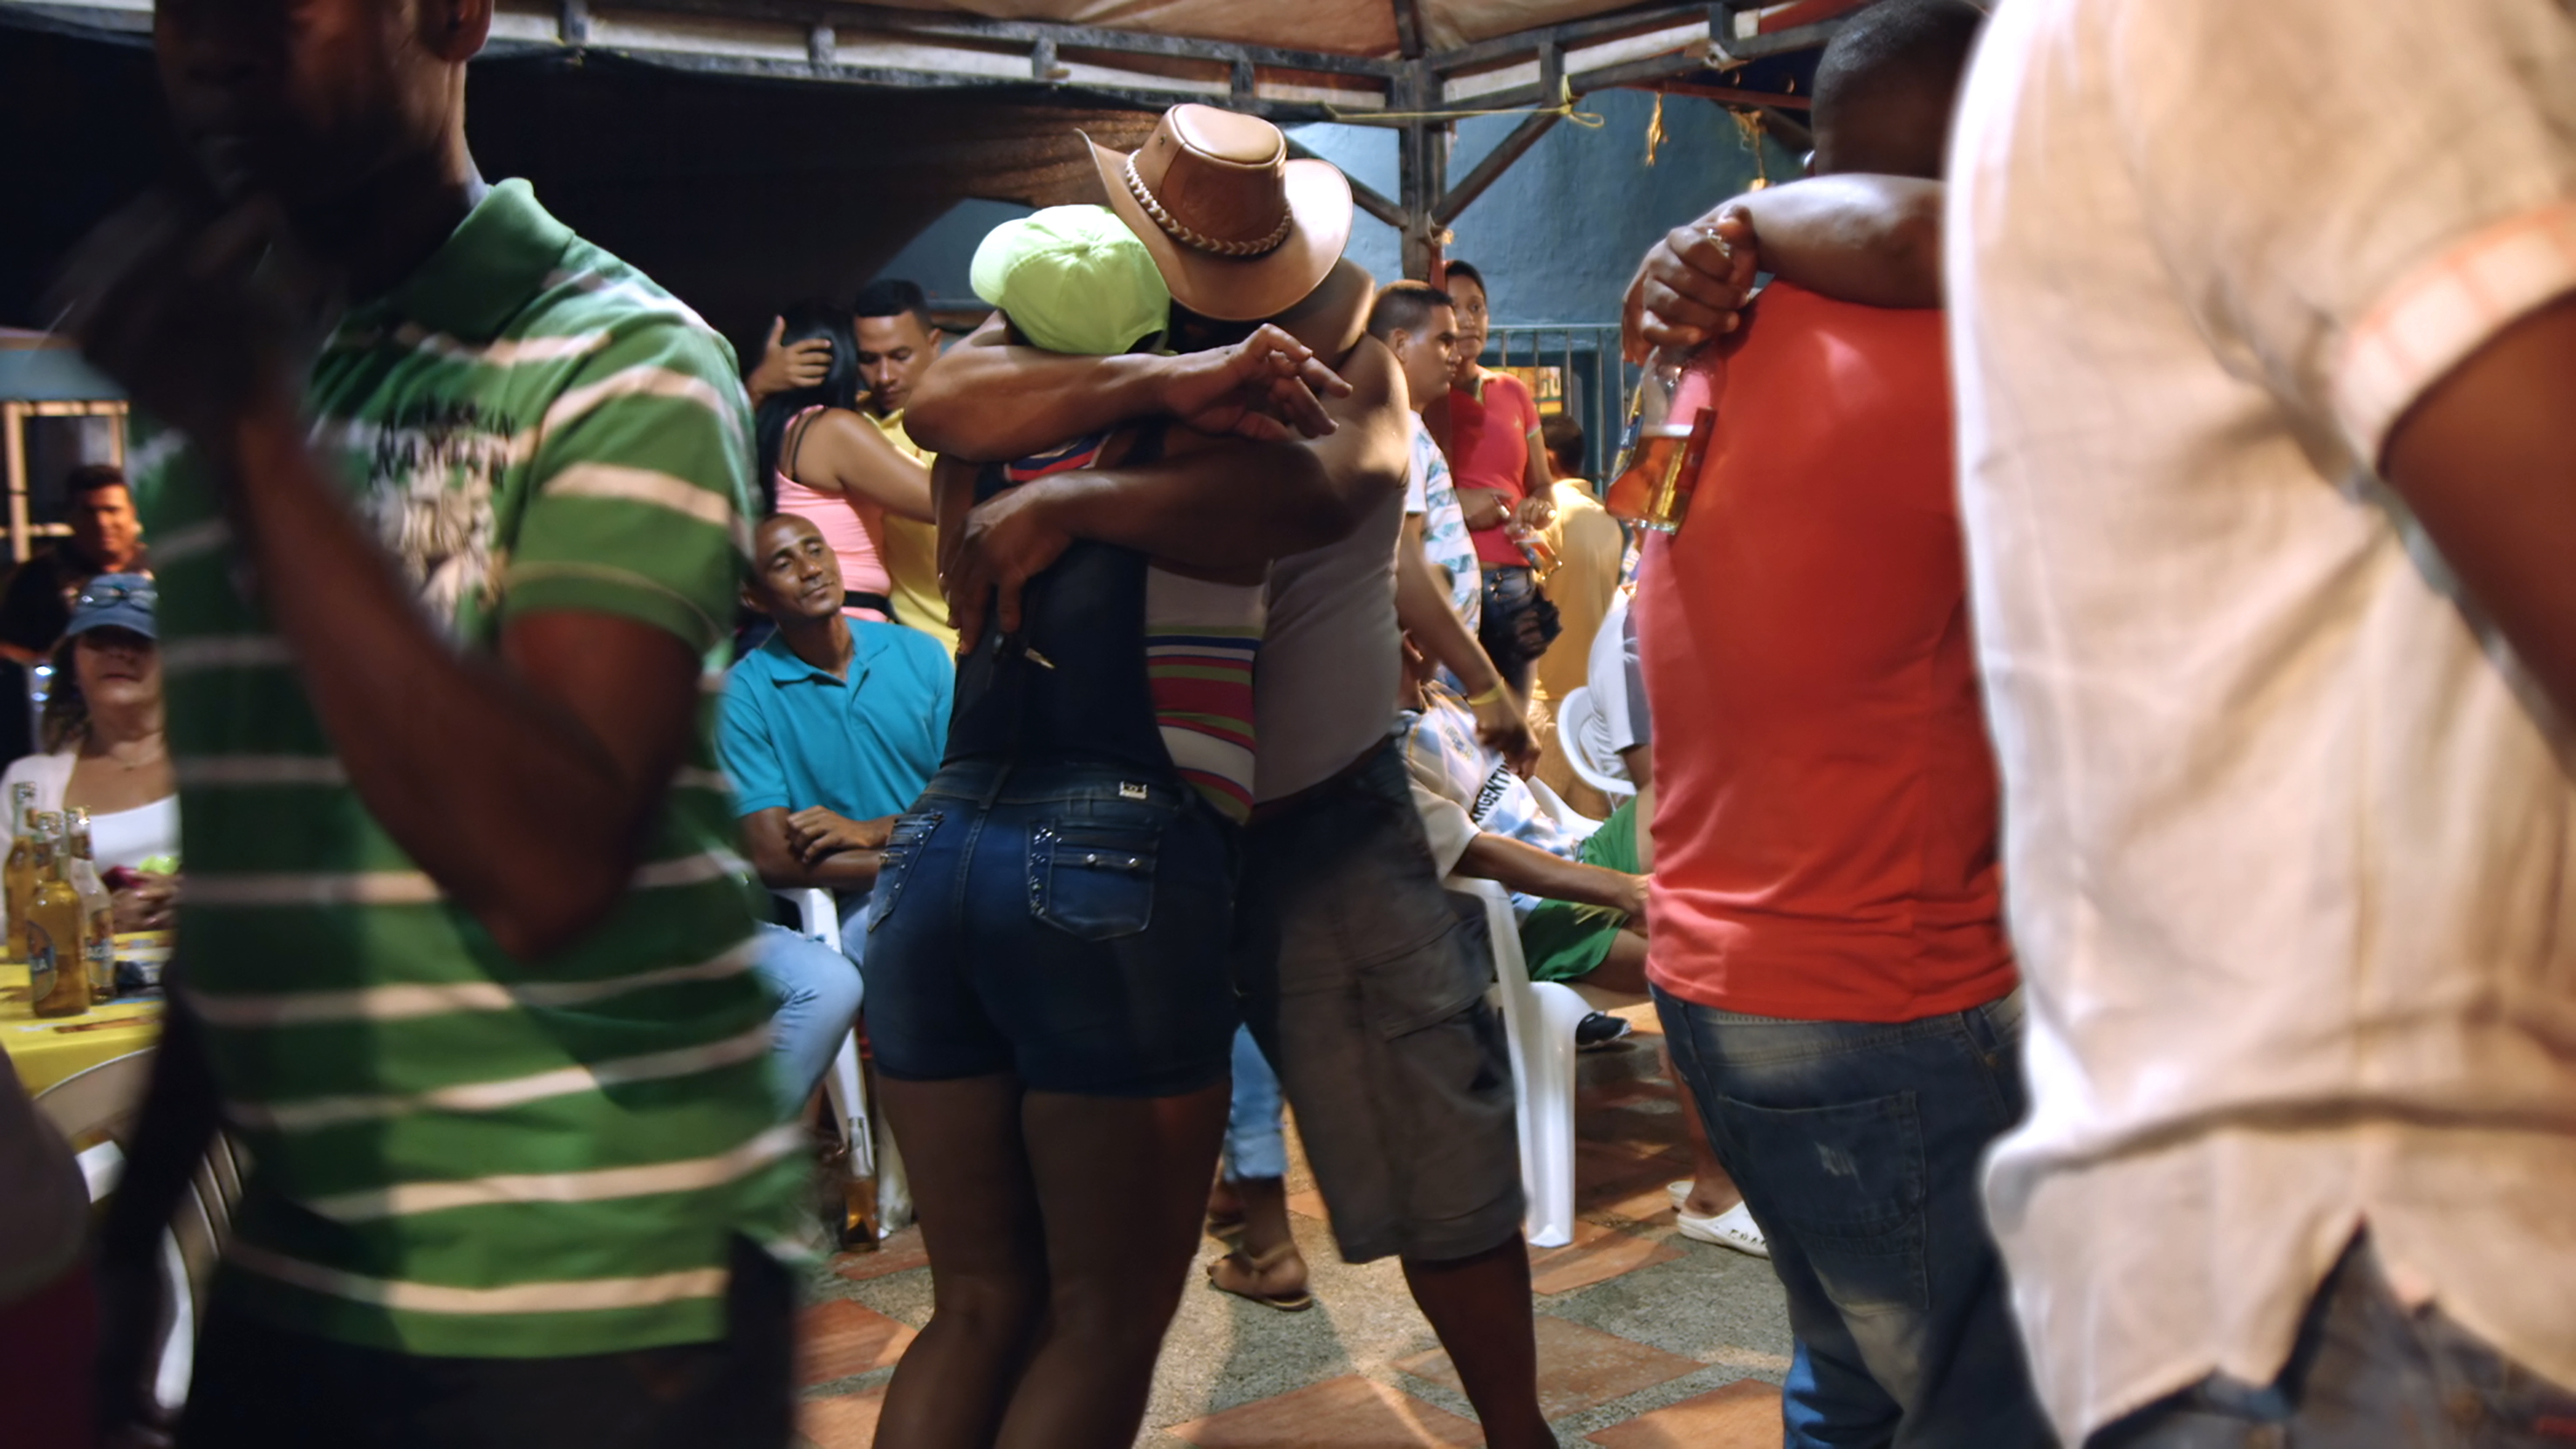 A couple dancing in the street in Barranquilla, Colombia